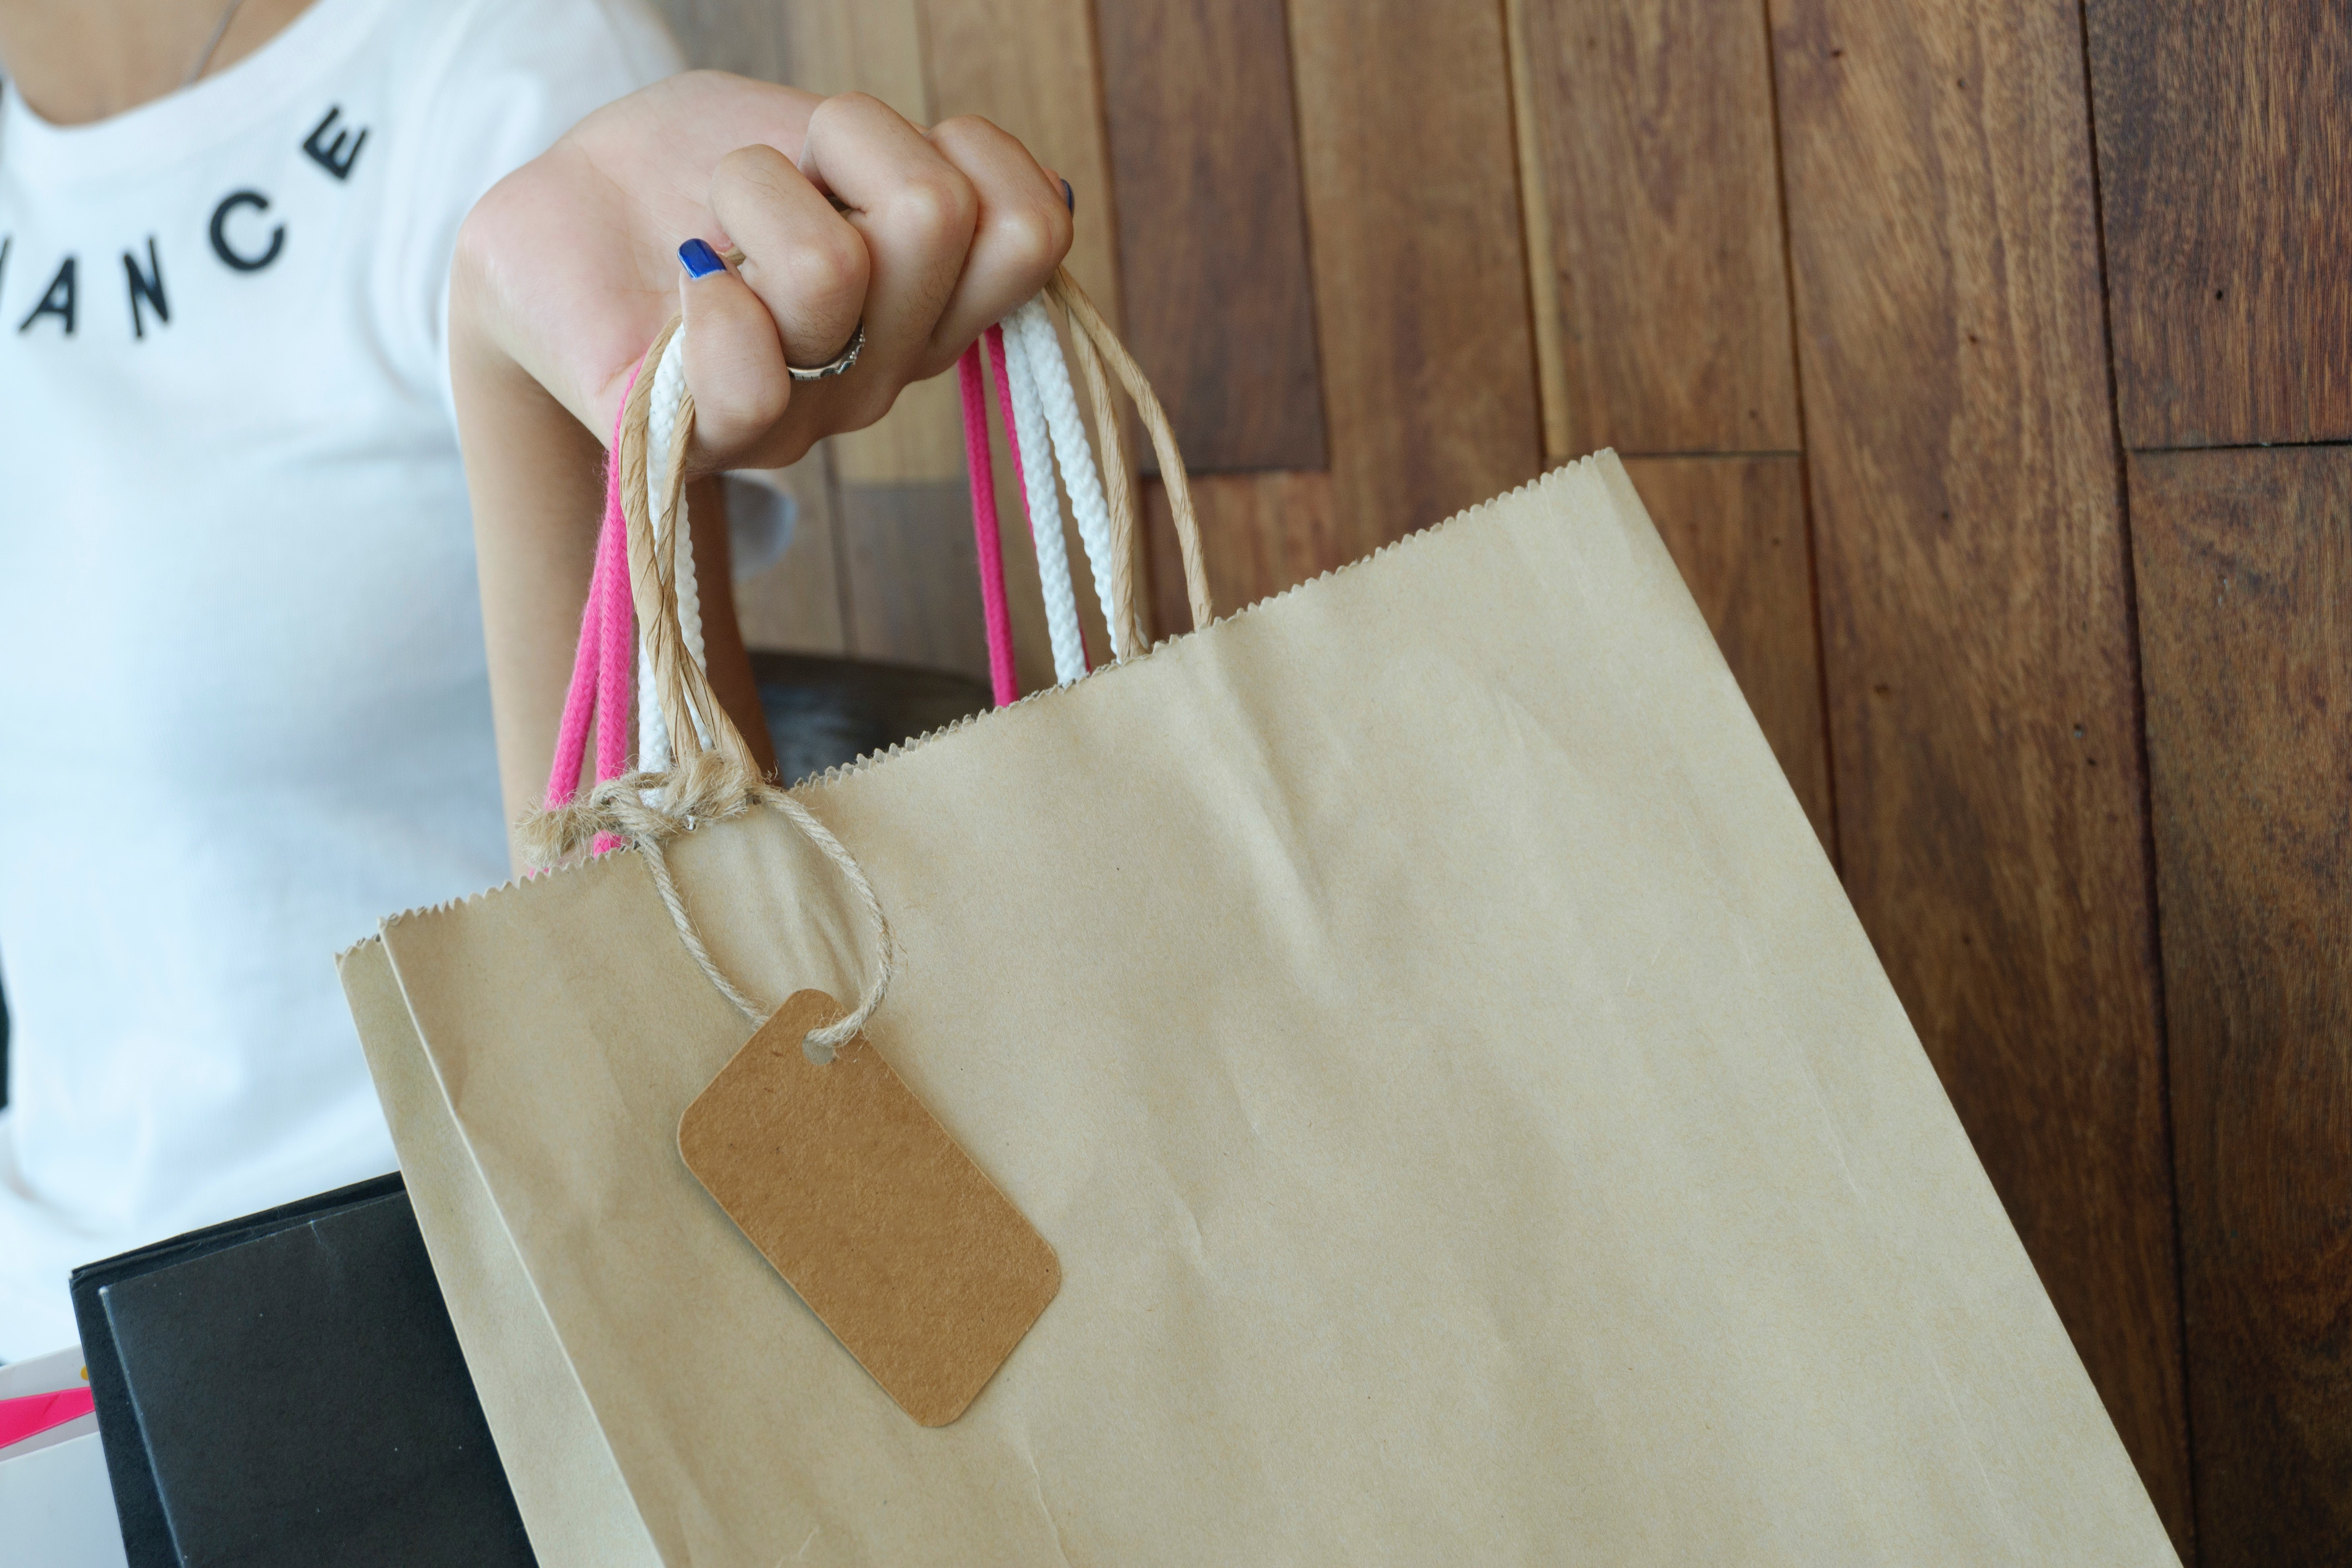 Photo Of A Woman Holding Shopping Bags 183 Free Stock Photo